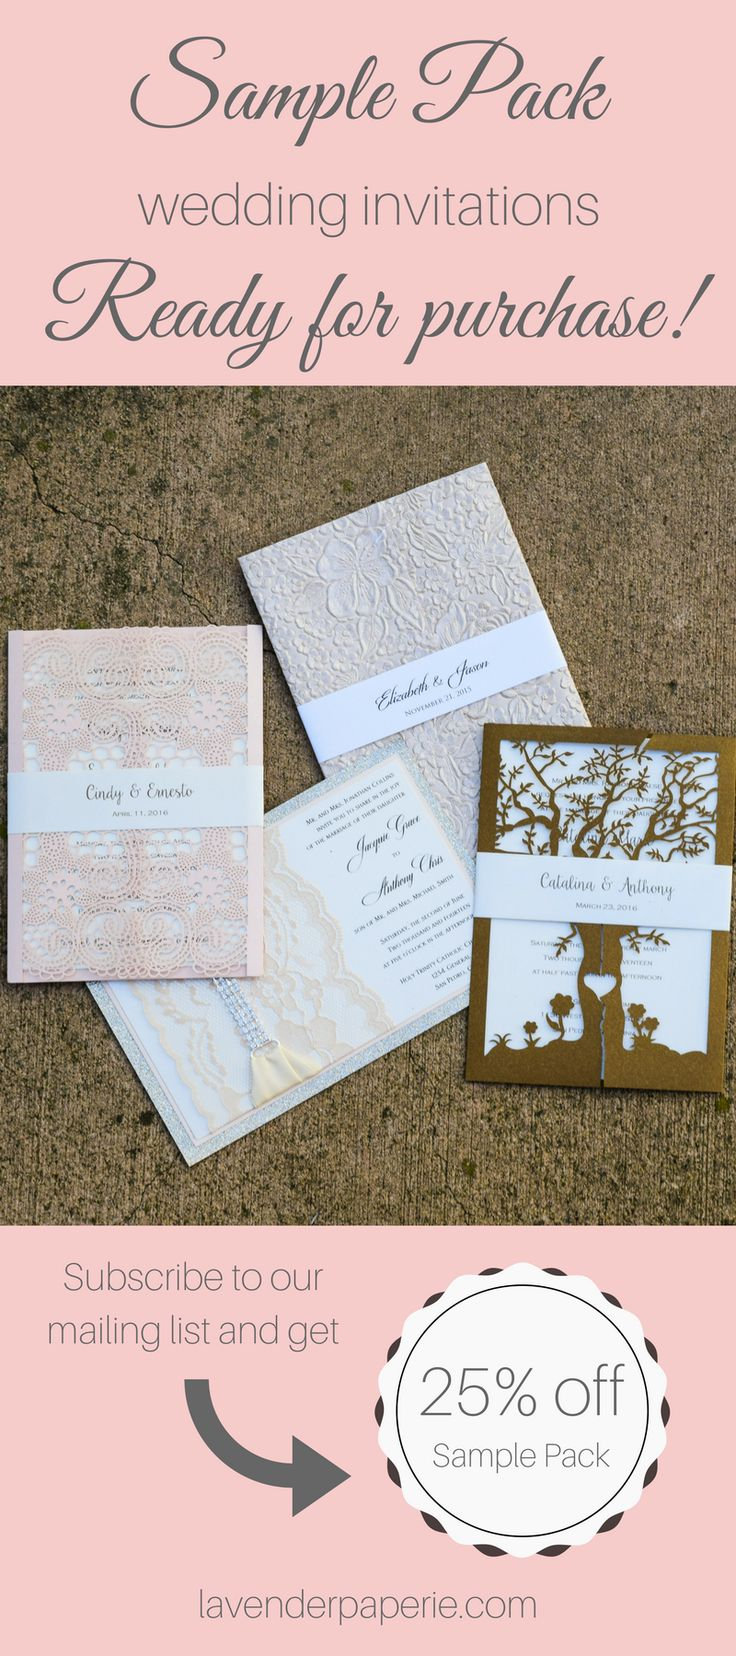 Our Boutique Offers Luxurious Handmade Lace Wedding Invitations As Well Laser Cut And Handcrafted